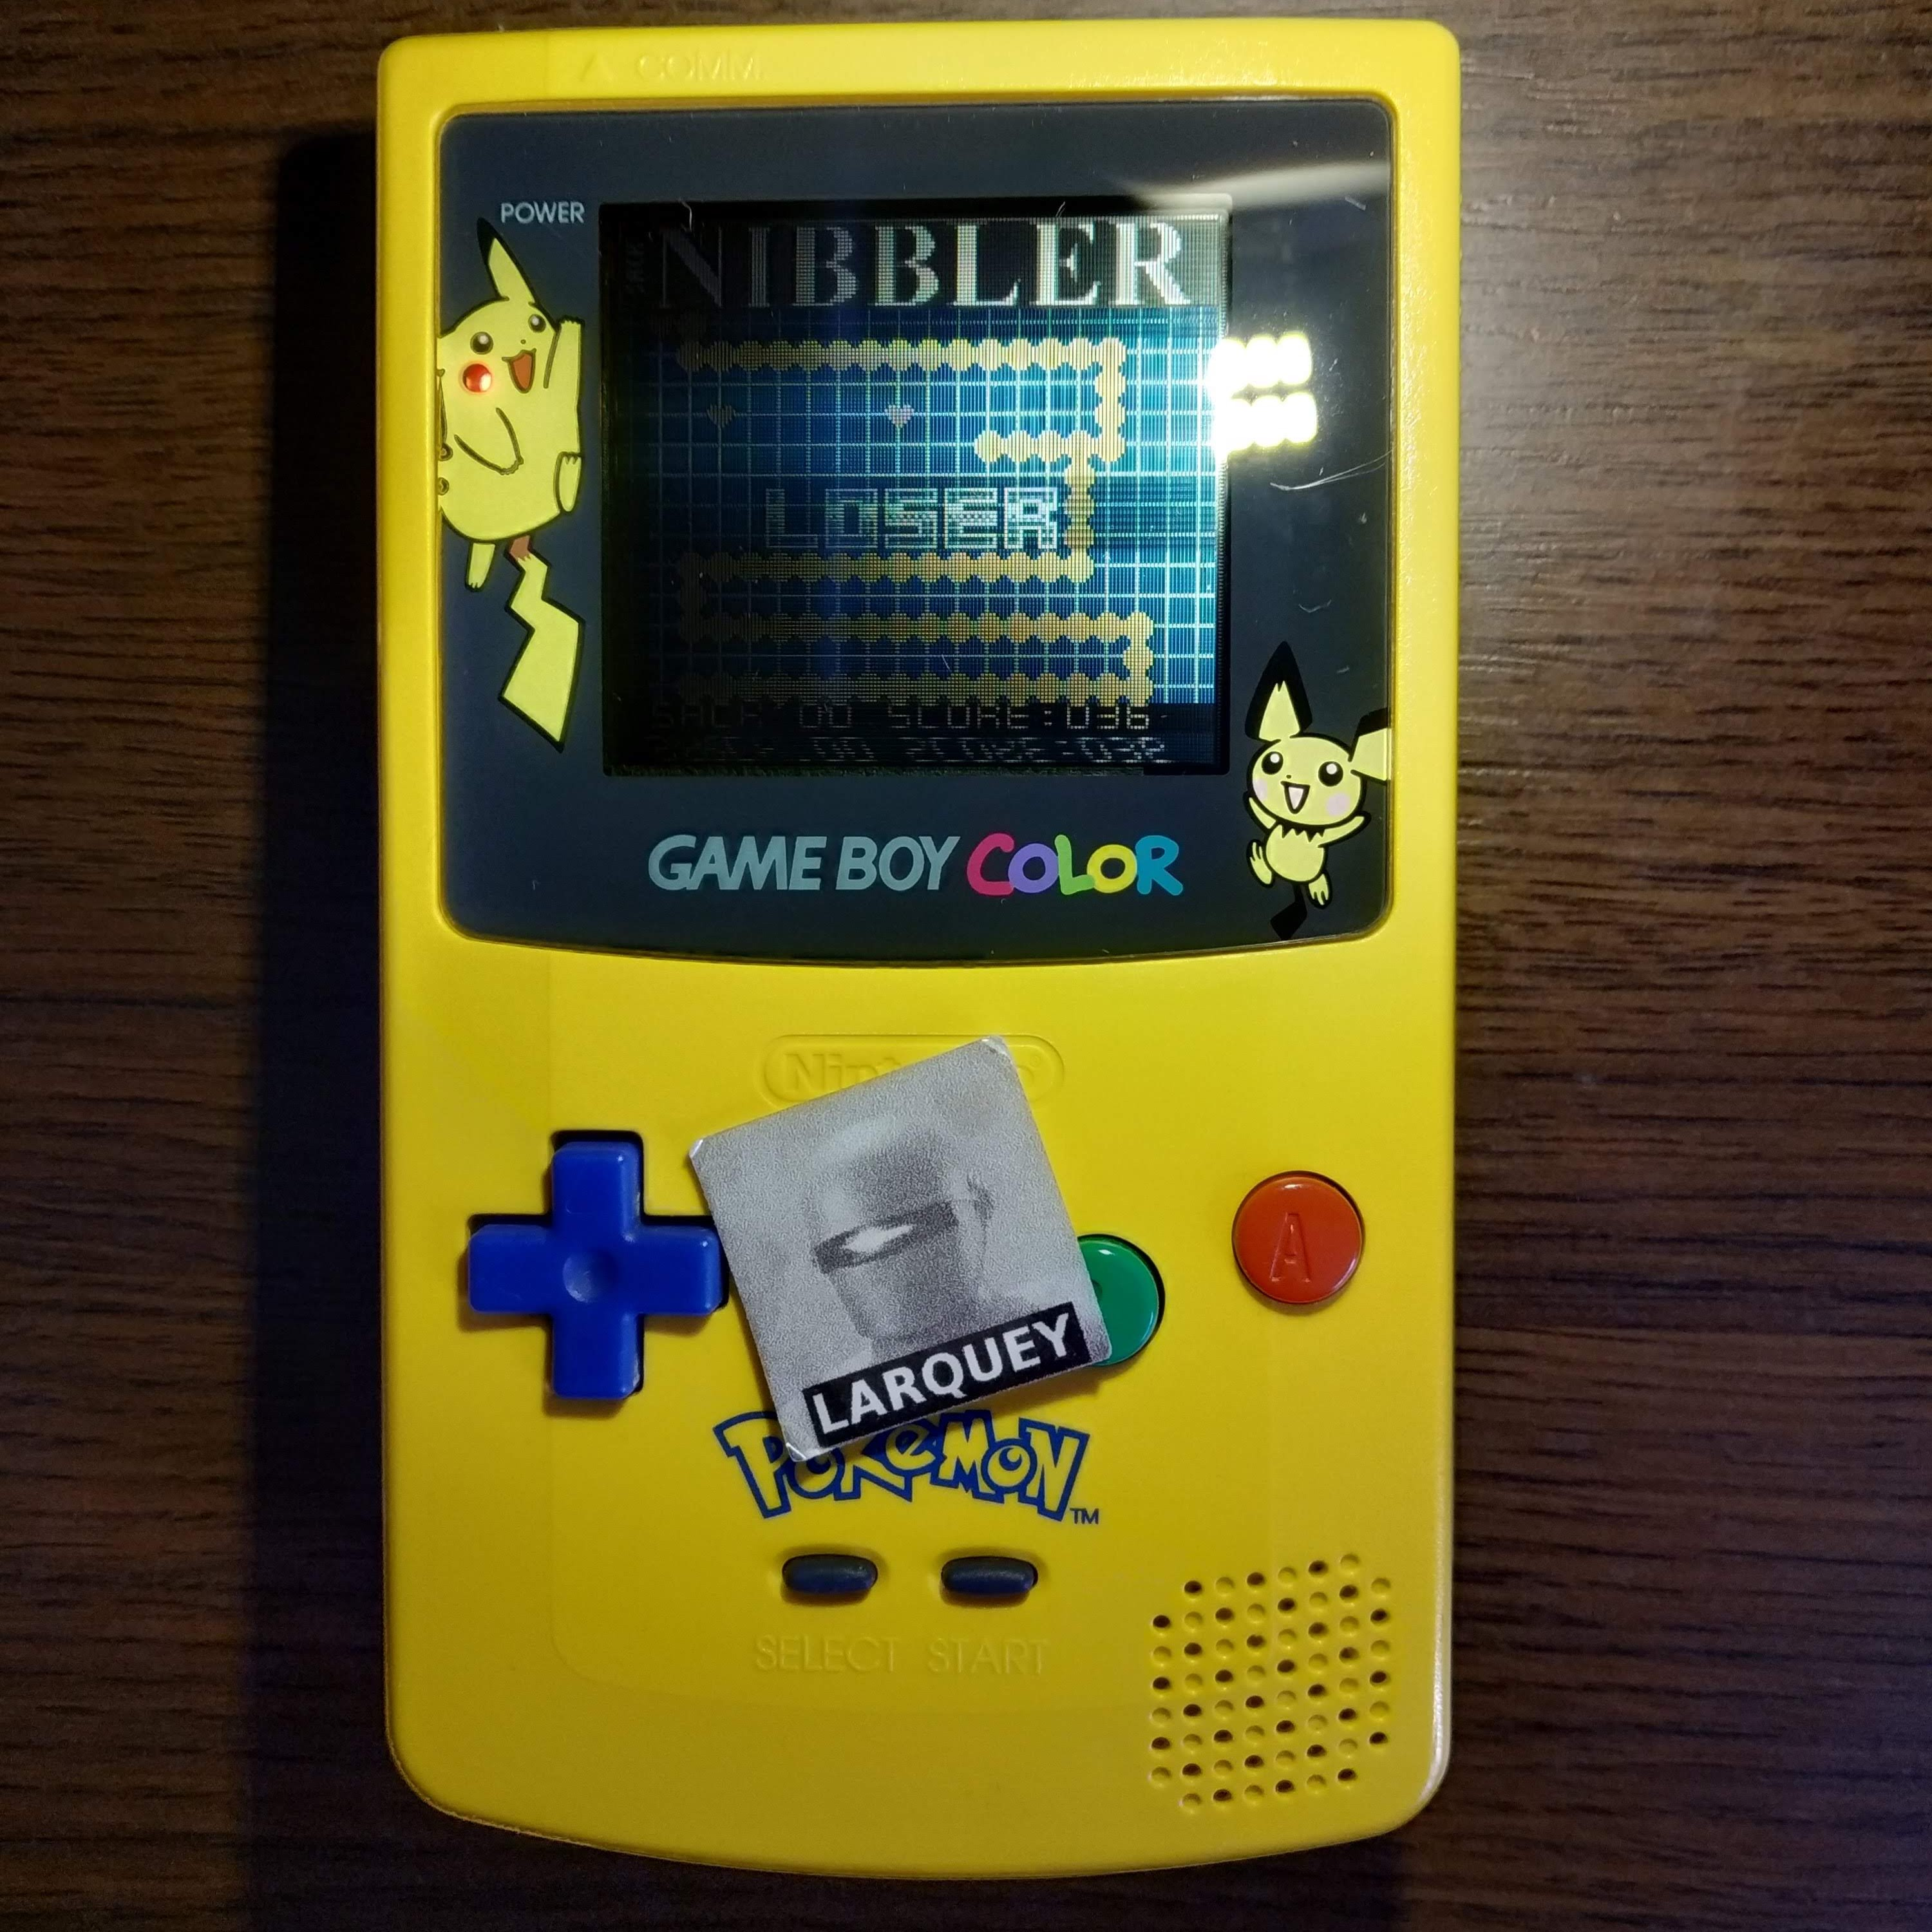 Larquey: Nibbler (Game Boy Color) 36 points on 2020-07-14 11:39:35